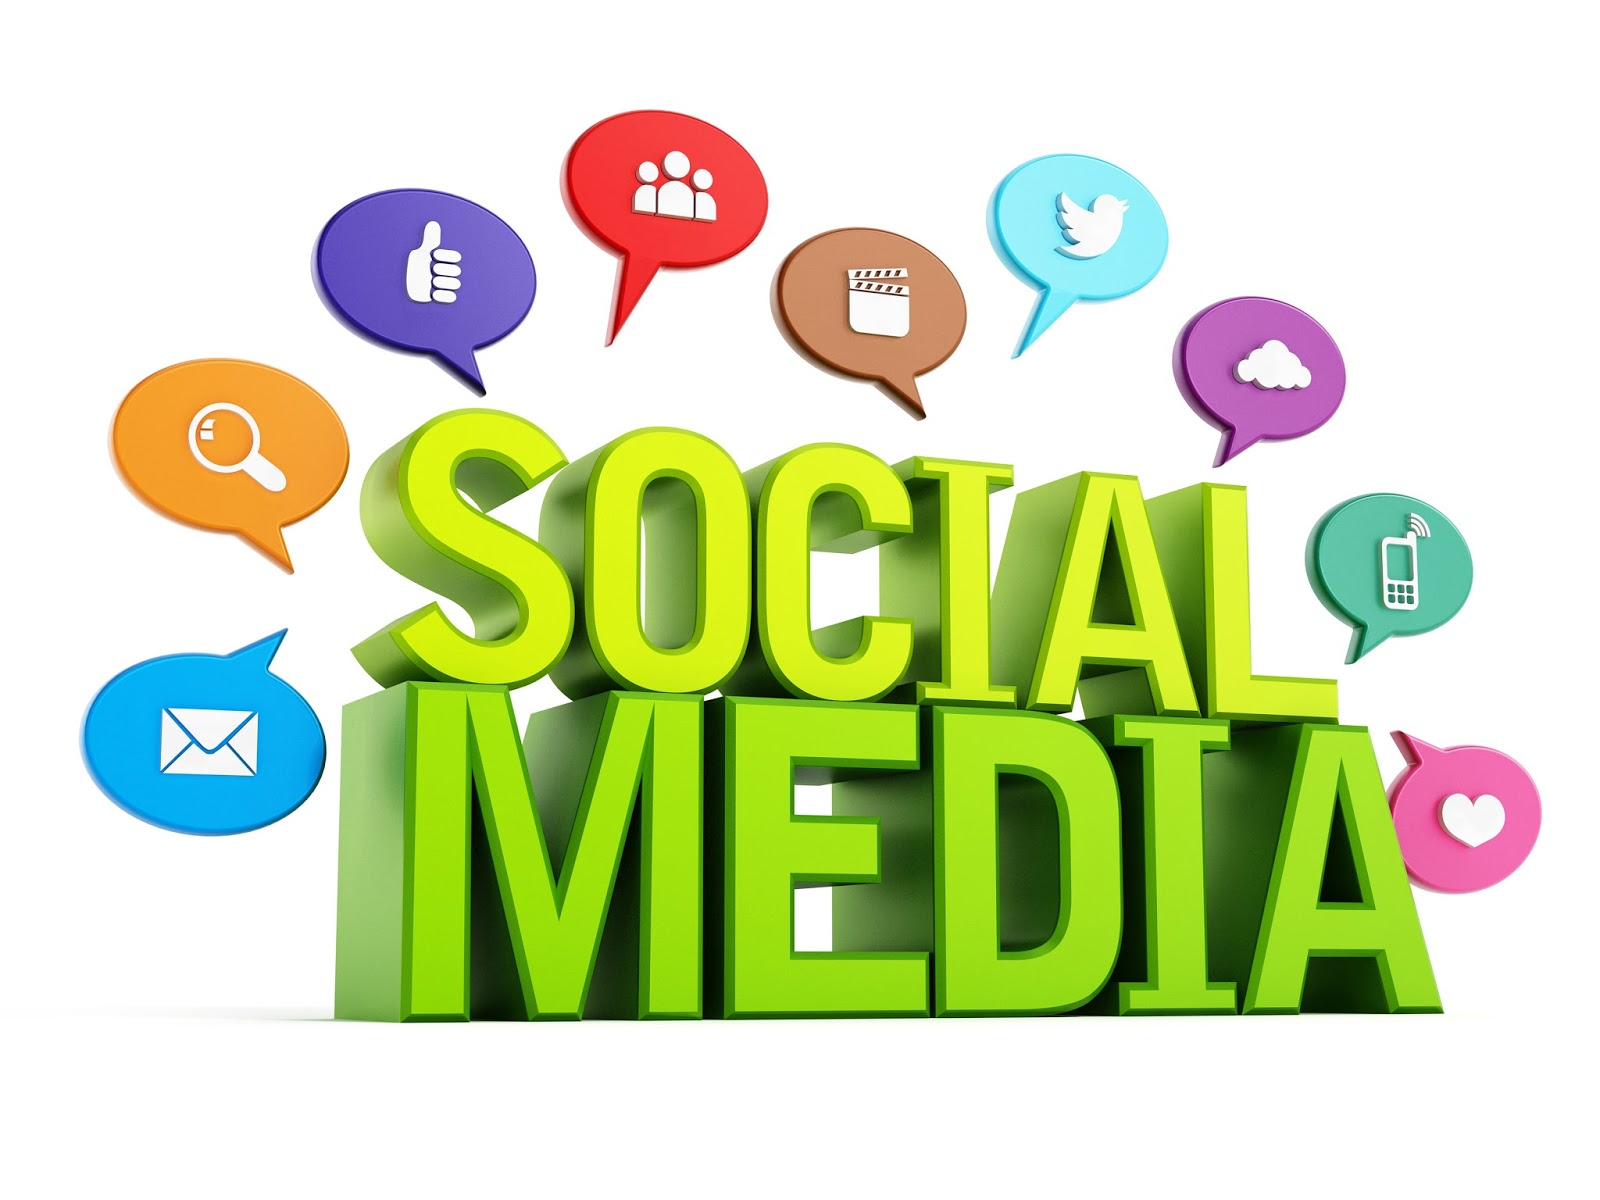 4 Factors for Measuring your Social Media Marketing ROI 1